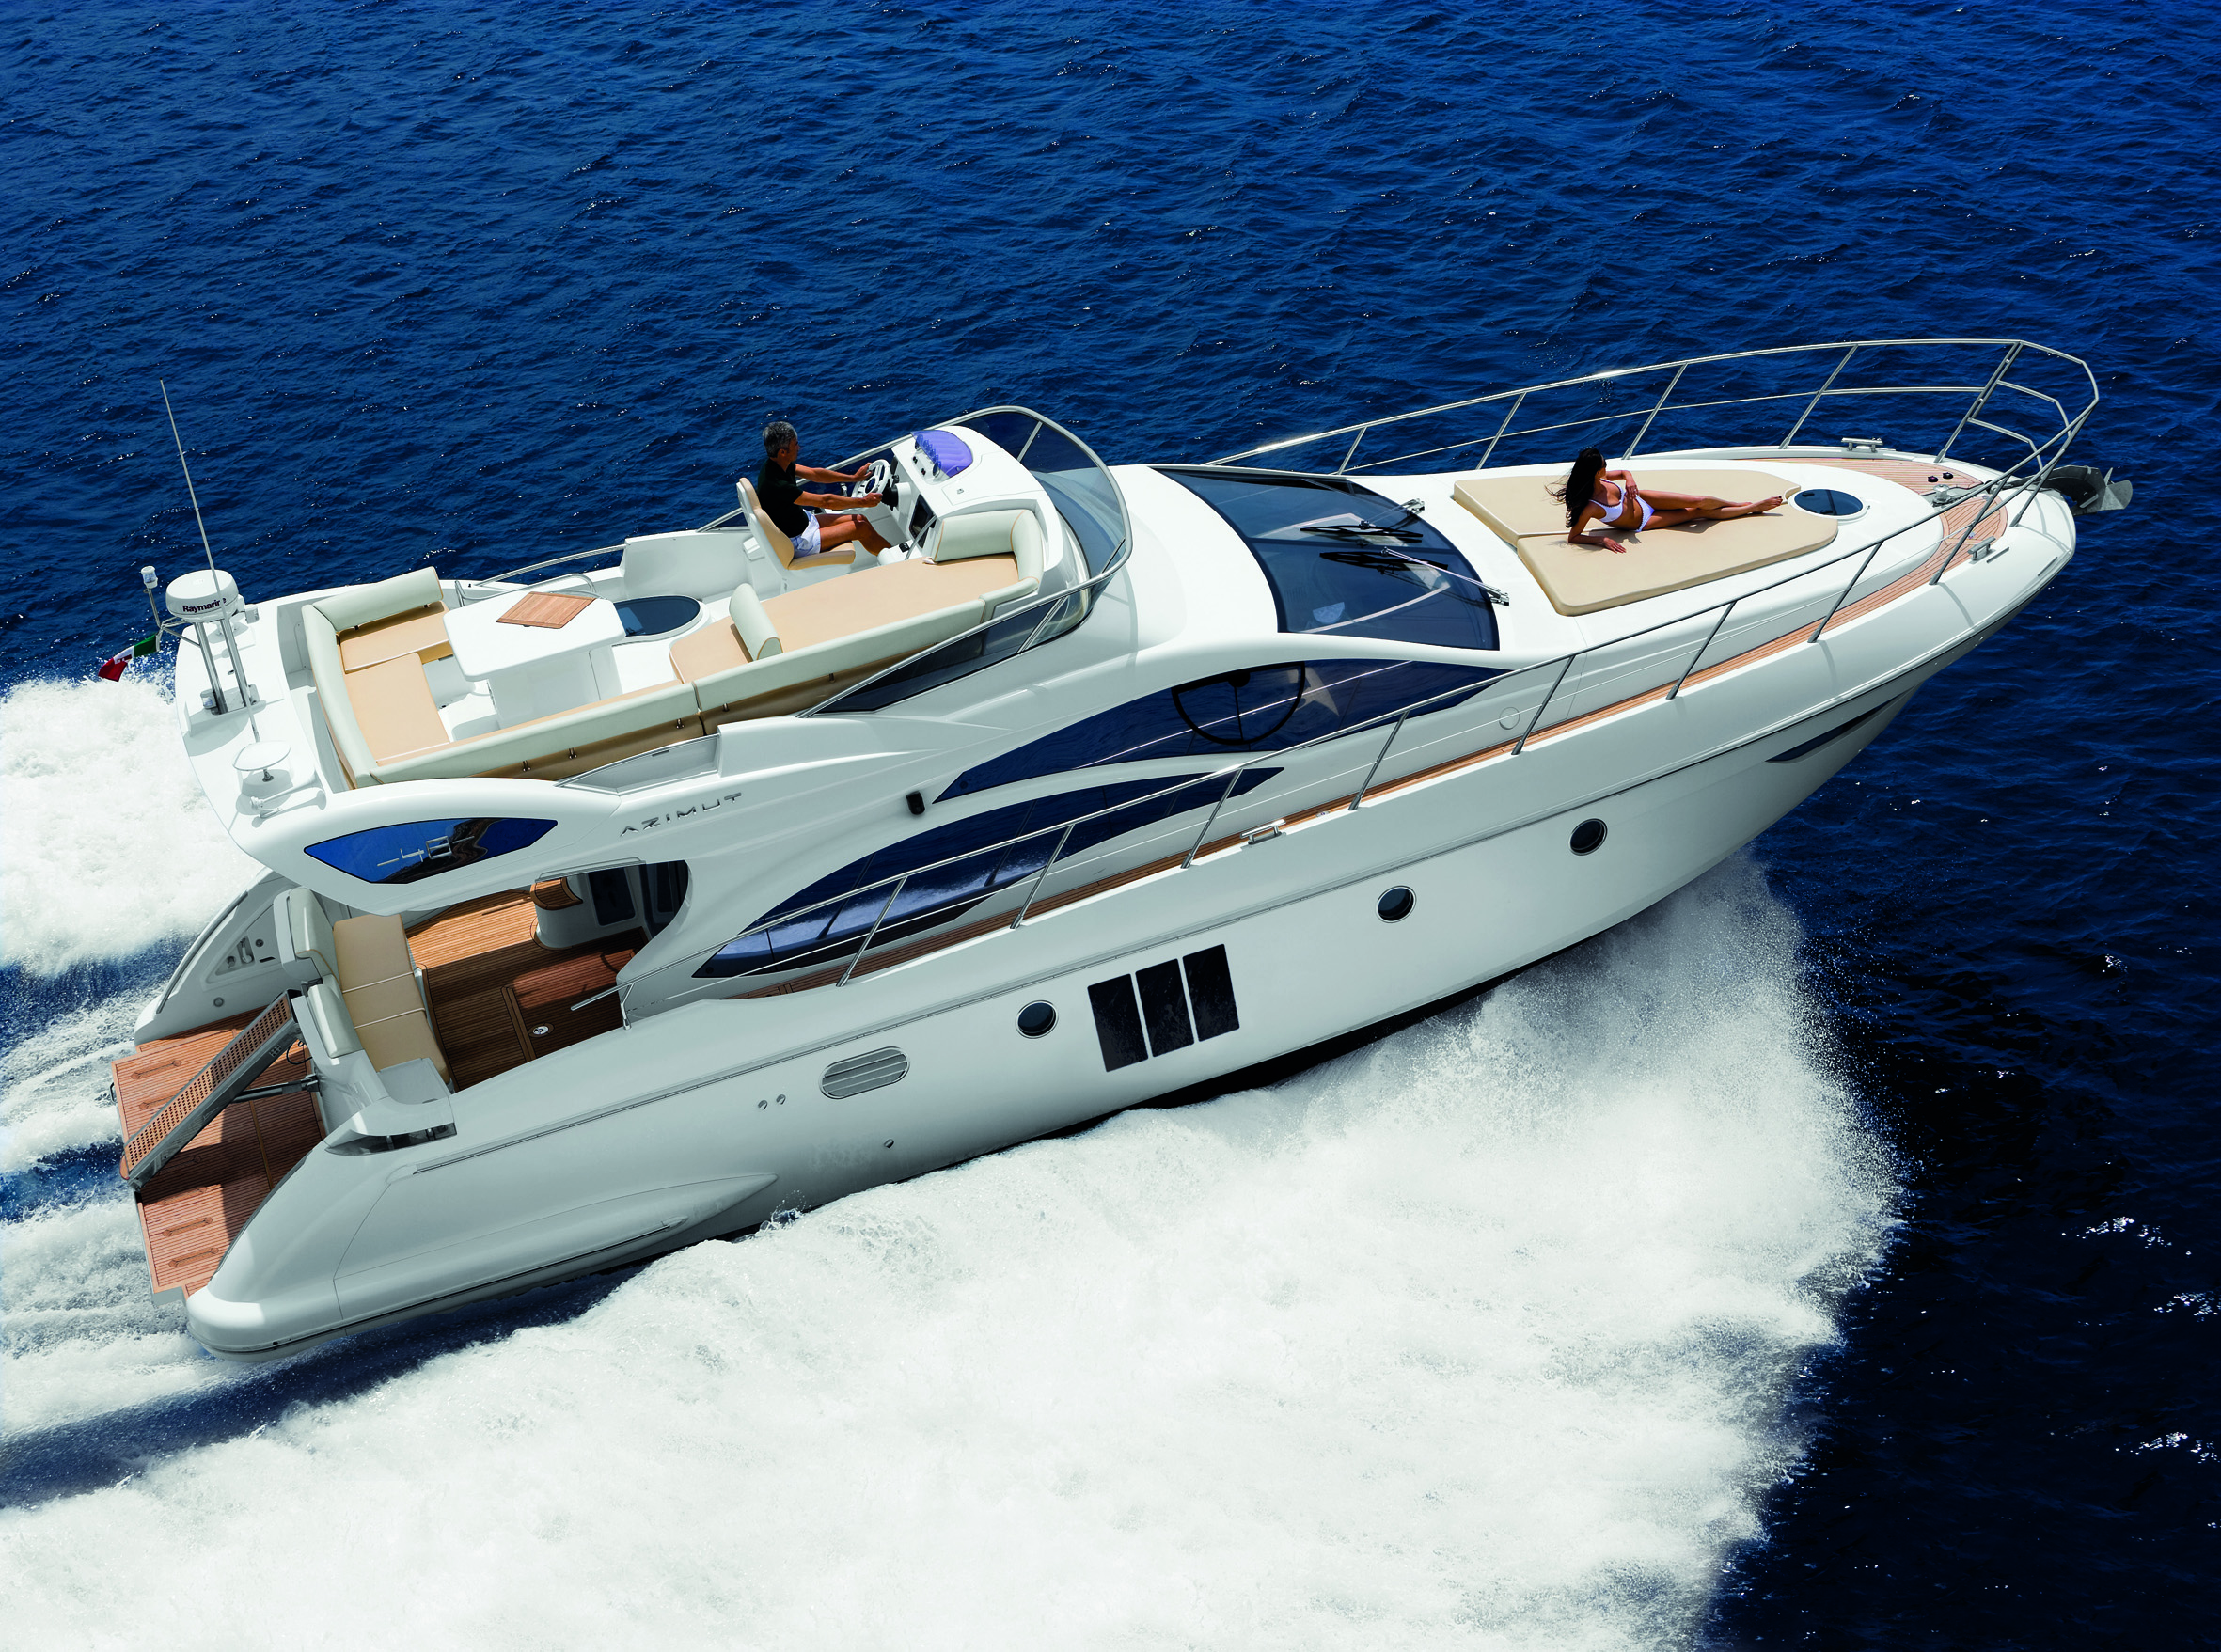 Arise new Azimut 48 to a new dawn in Flybridge Sports Crusiers